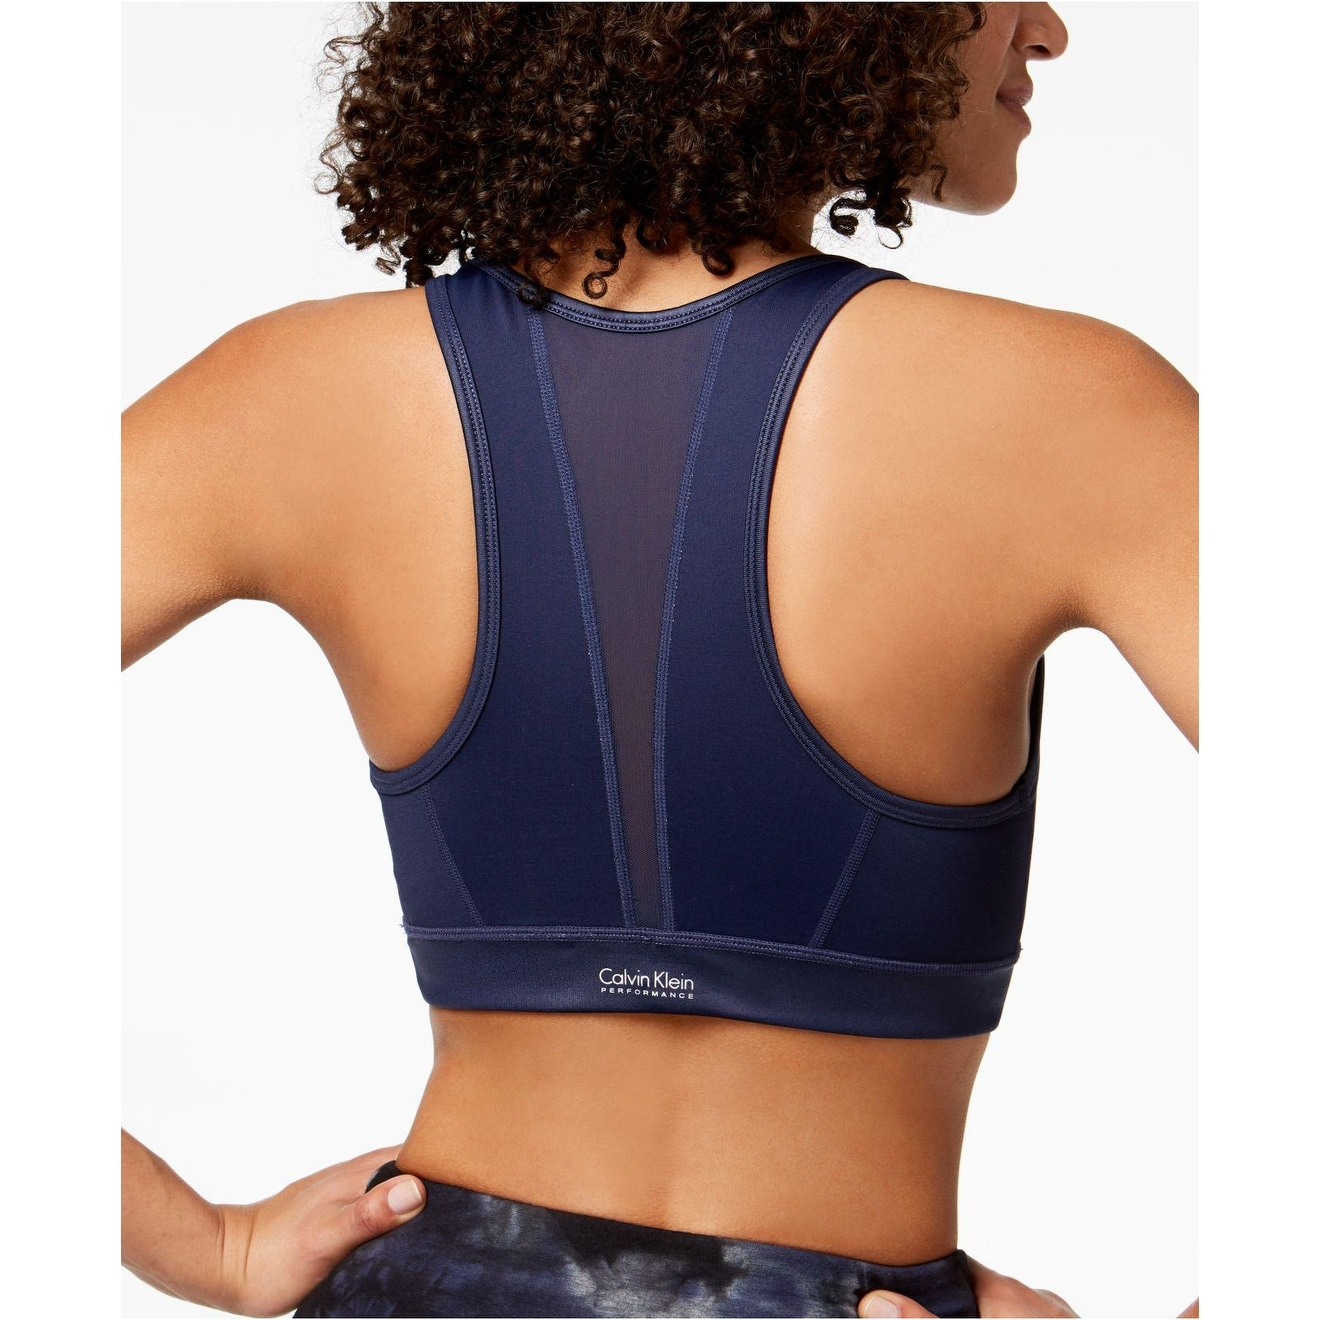 09a93b483b Shop Calvin Klein Performance Women s High-Neckline Racerback Support  Sports Bra Blue Size Small - S - Free Shipping On Orders Over  45 -  Overstock.com - ...